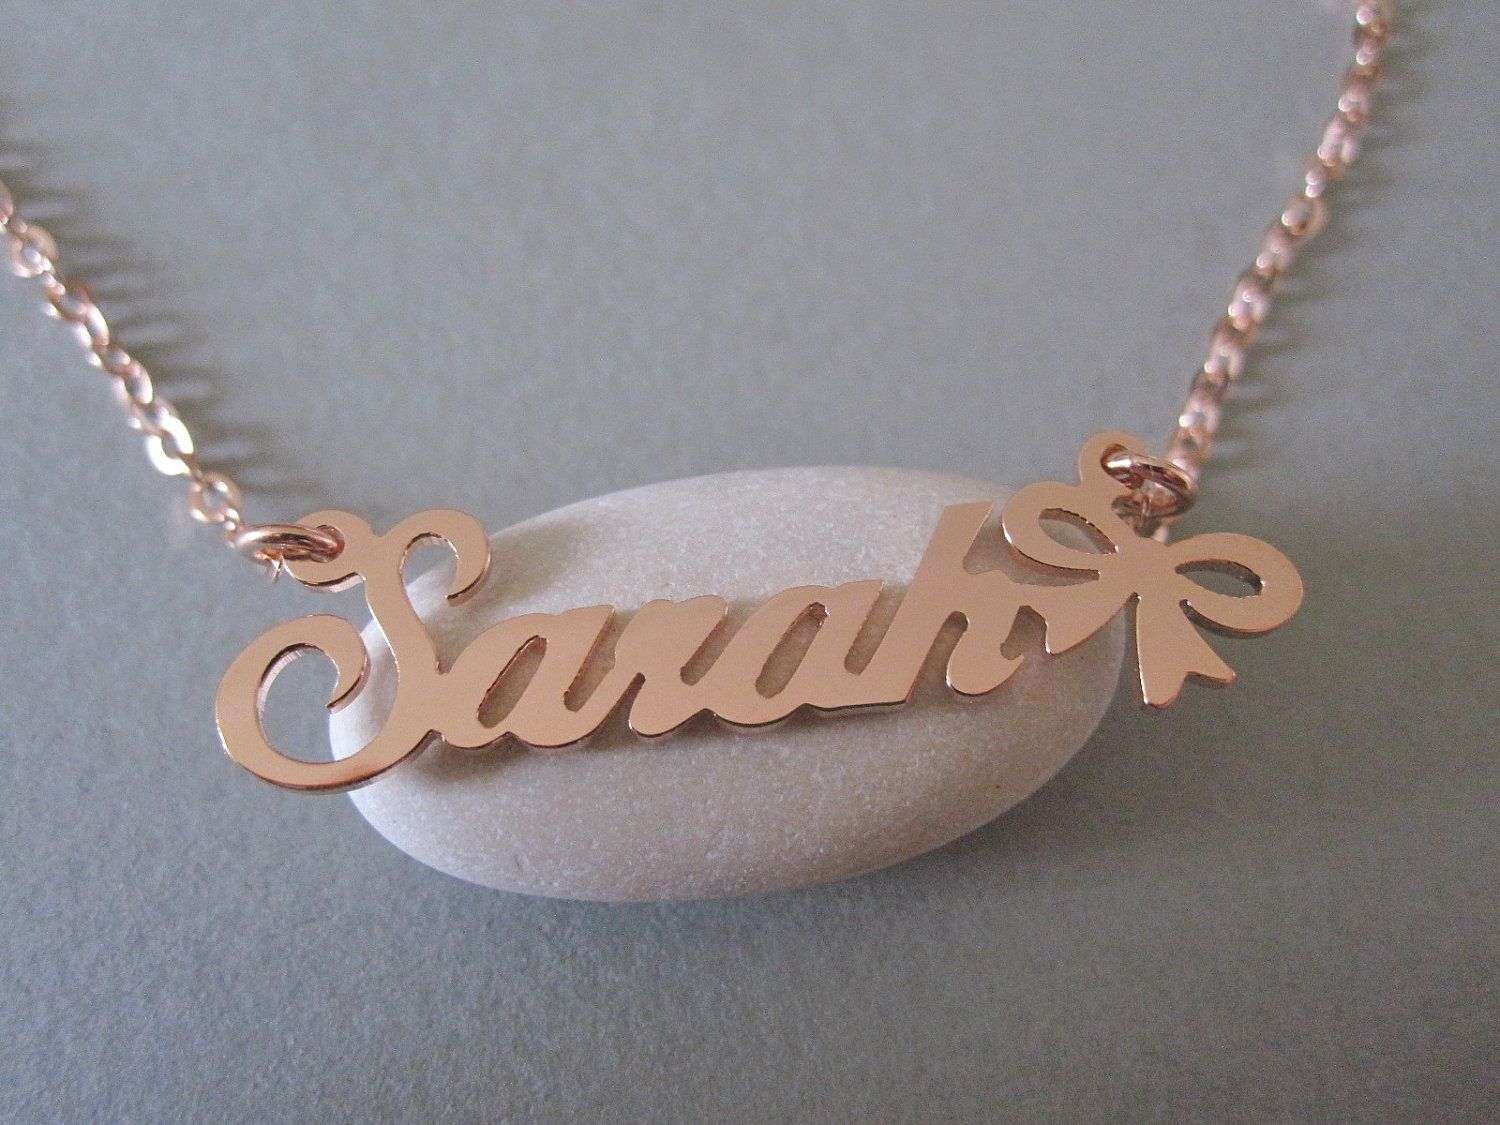 Personalized Rose Gold Name Necklace With Design B Via Etsy Gold Name Necklace Name Necklace Necklace